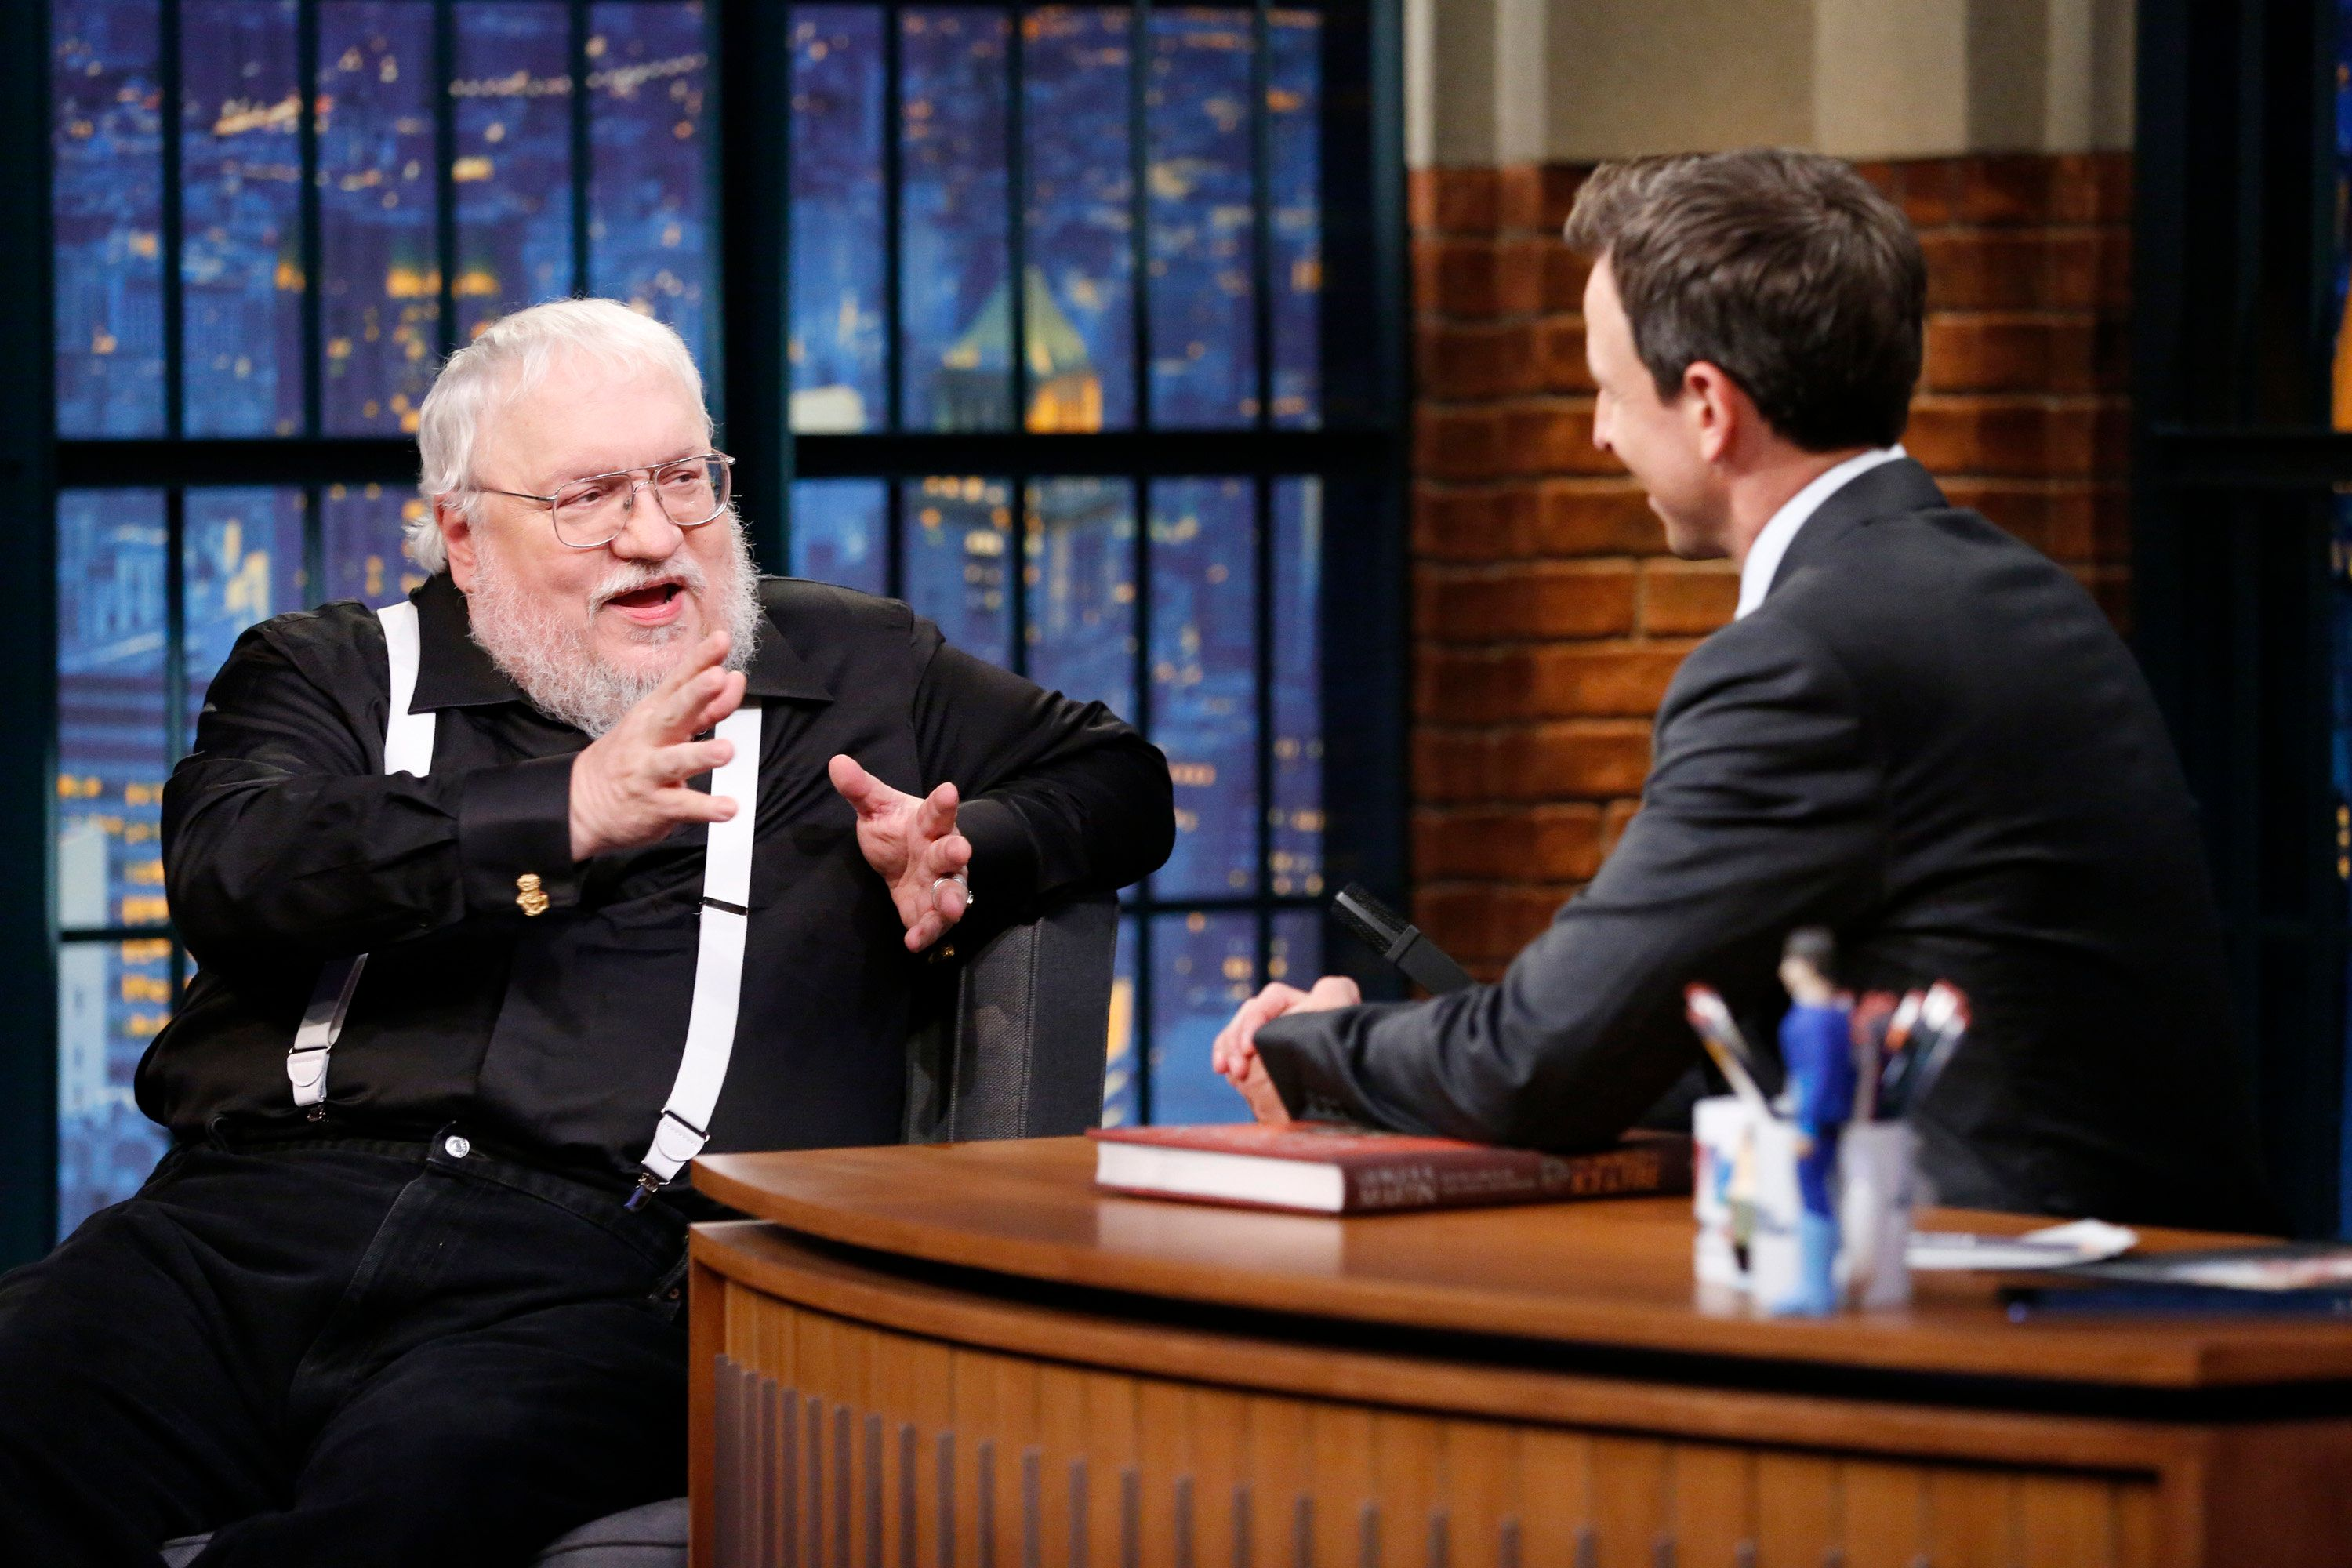 LATE NIGHT WITH SETH MEYERS -- Episode 0117 -- Pictured: (l-r) Author George R.R. Martin during an interview with host Seth Meyers on October 28, 2014 -- (Photo by: Lloyd Bishop/NBC/NBCU Photo Bank via Getty Images)